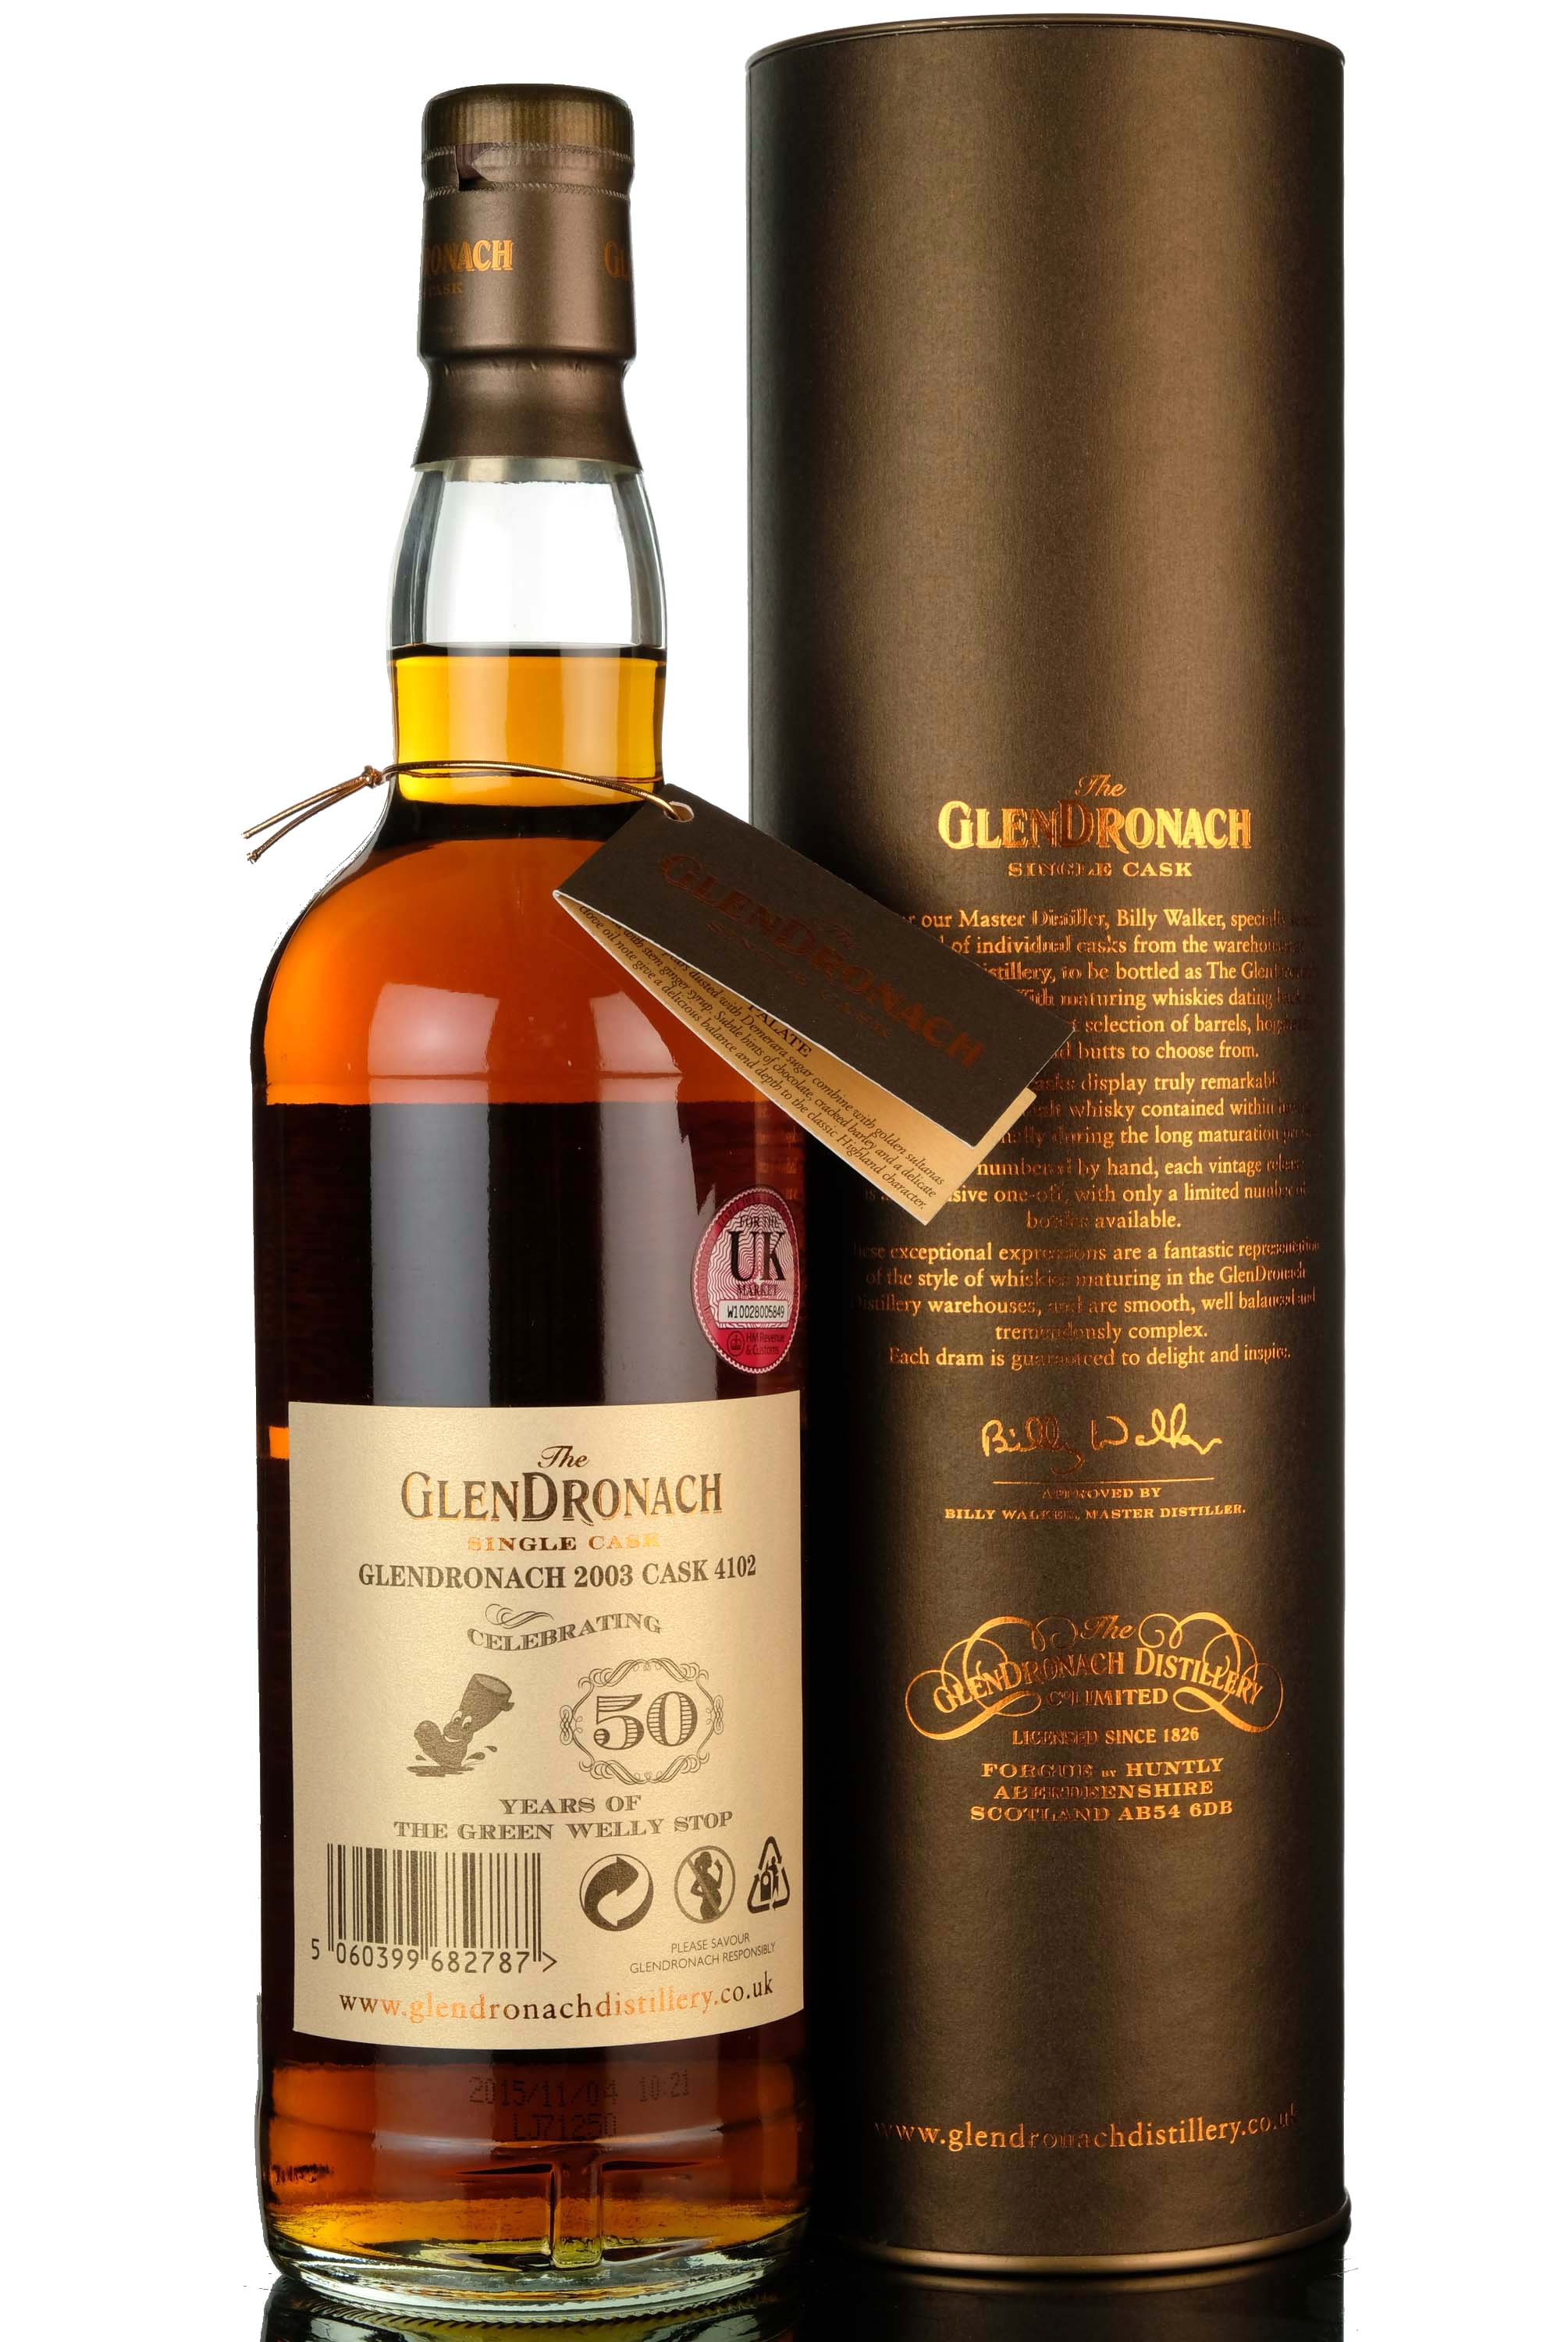 glendronach 2003-2015 - 12 year old - single cask 4102 - green welly stop